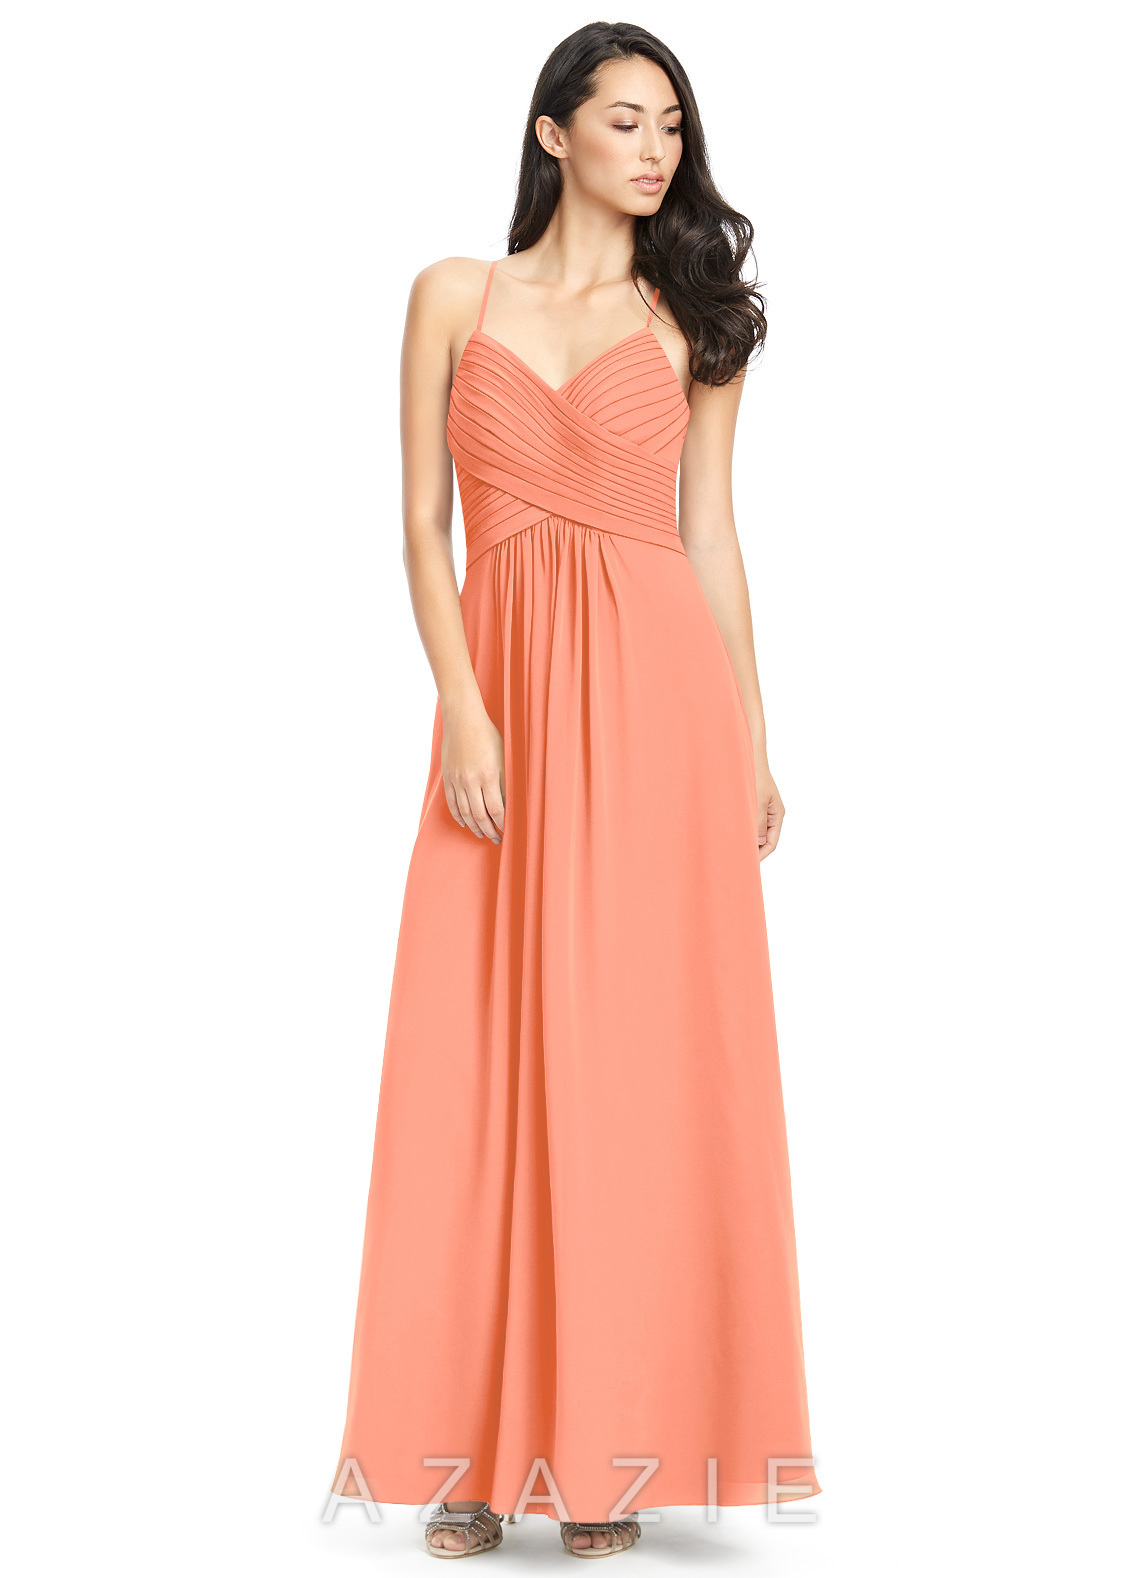 7a7aa6ece1f Azazie Haleigh Bridesmaid Dress - Sunset